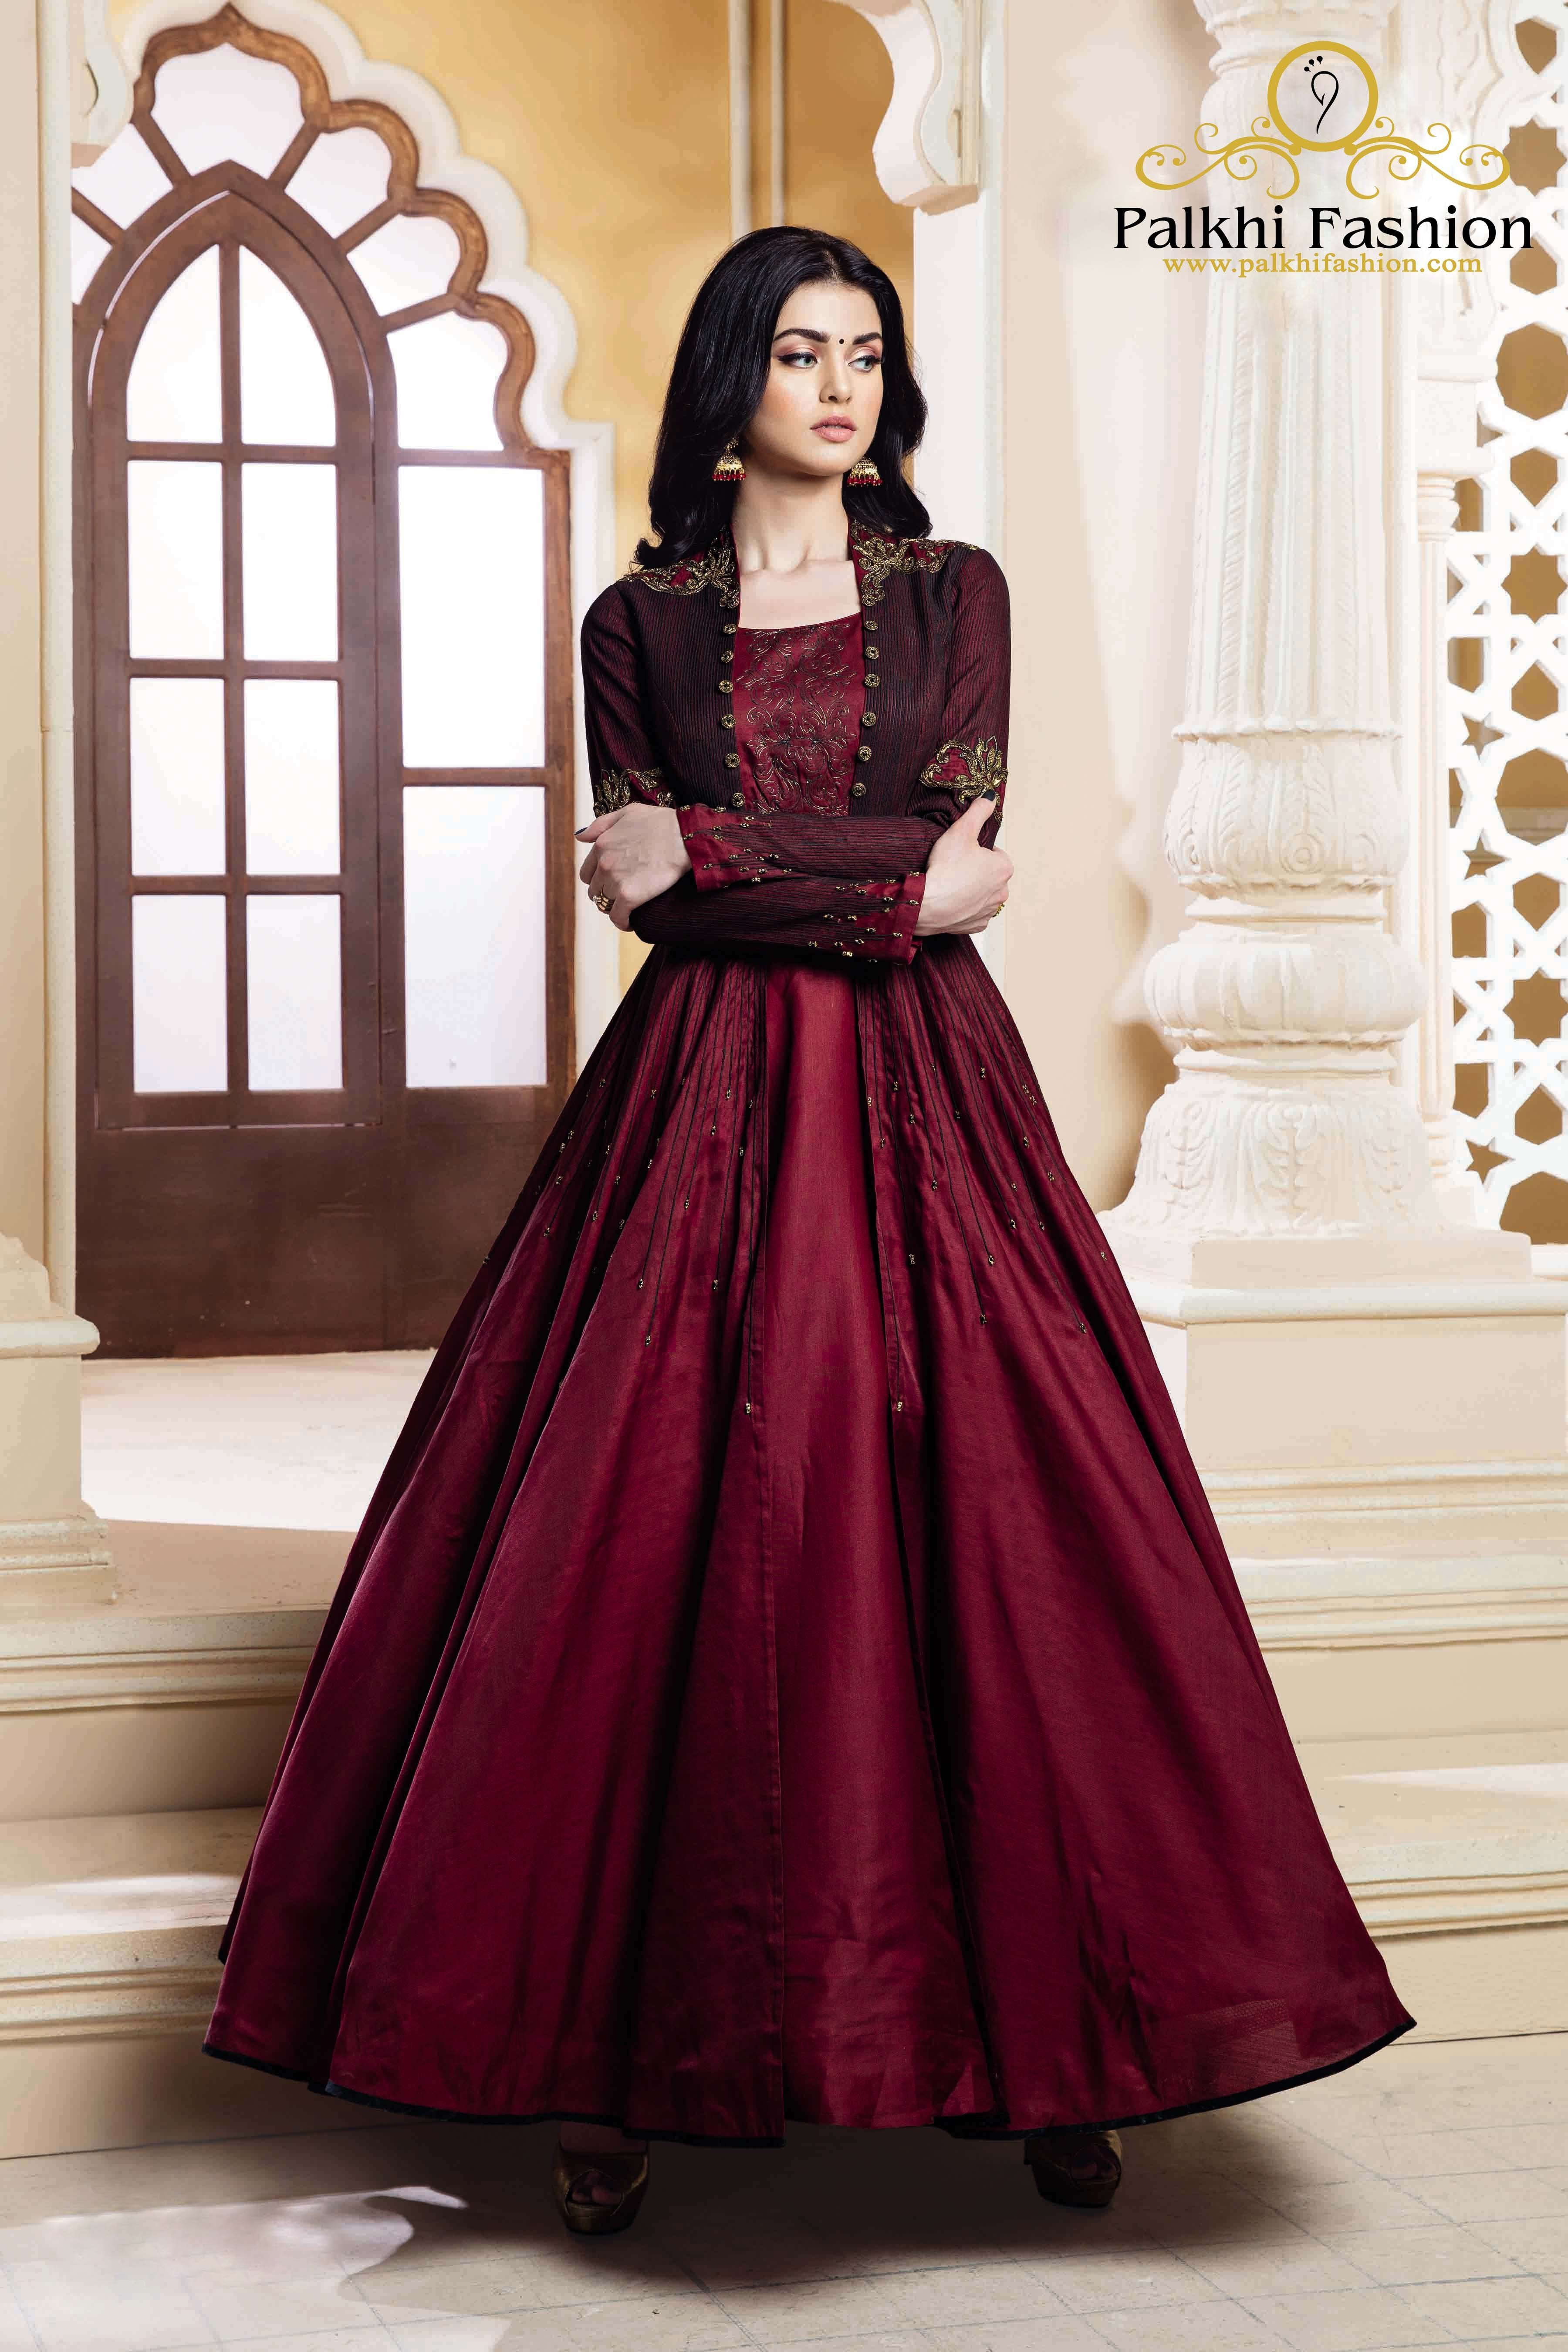 Maroon pure silk designer outfit with trendy style in latest